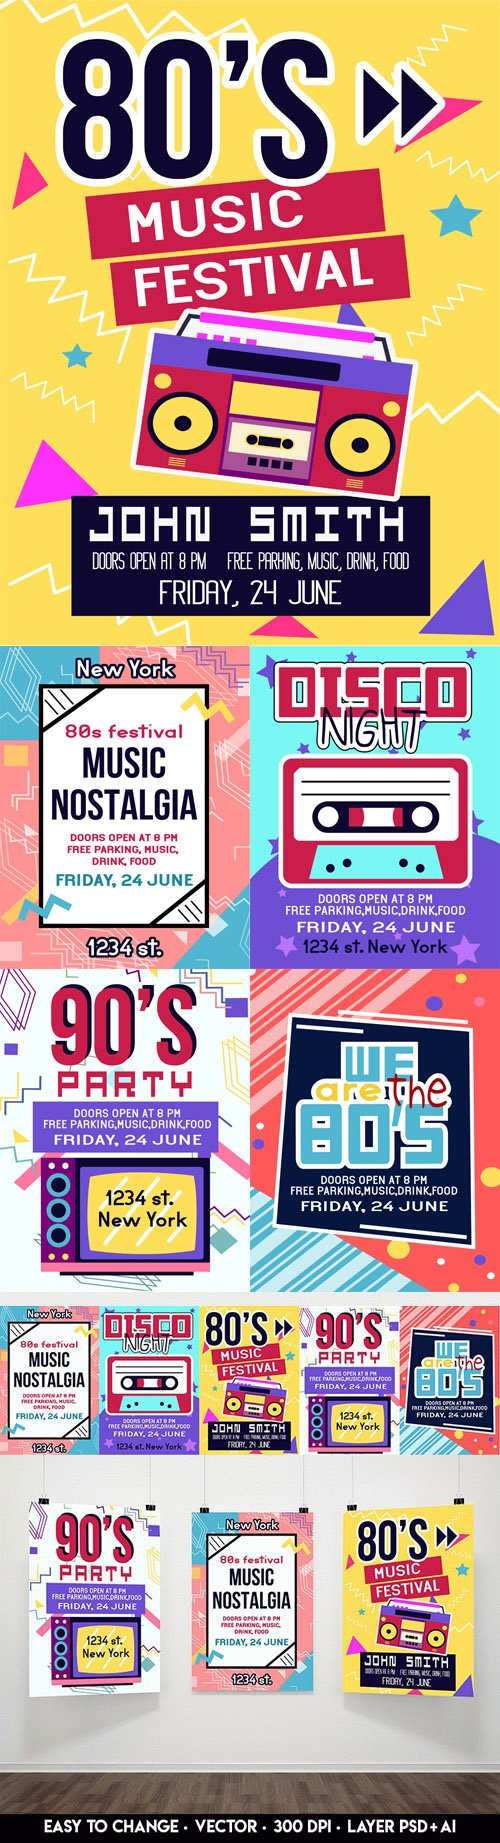 80-90s Flyer Templates Bundle [PSD/Ai]